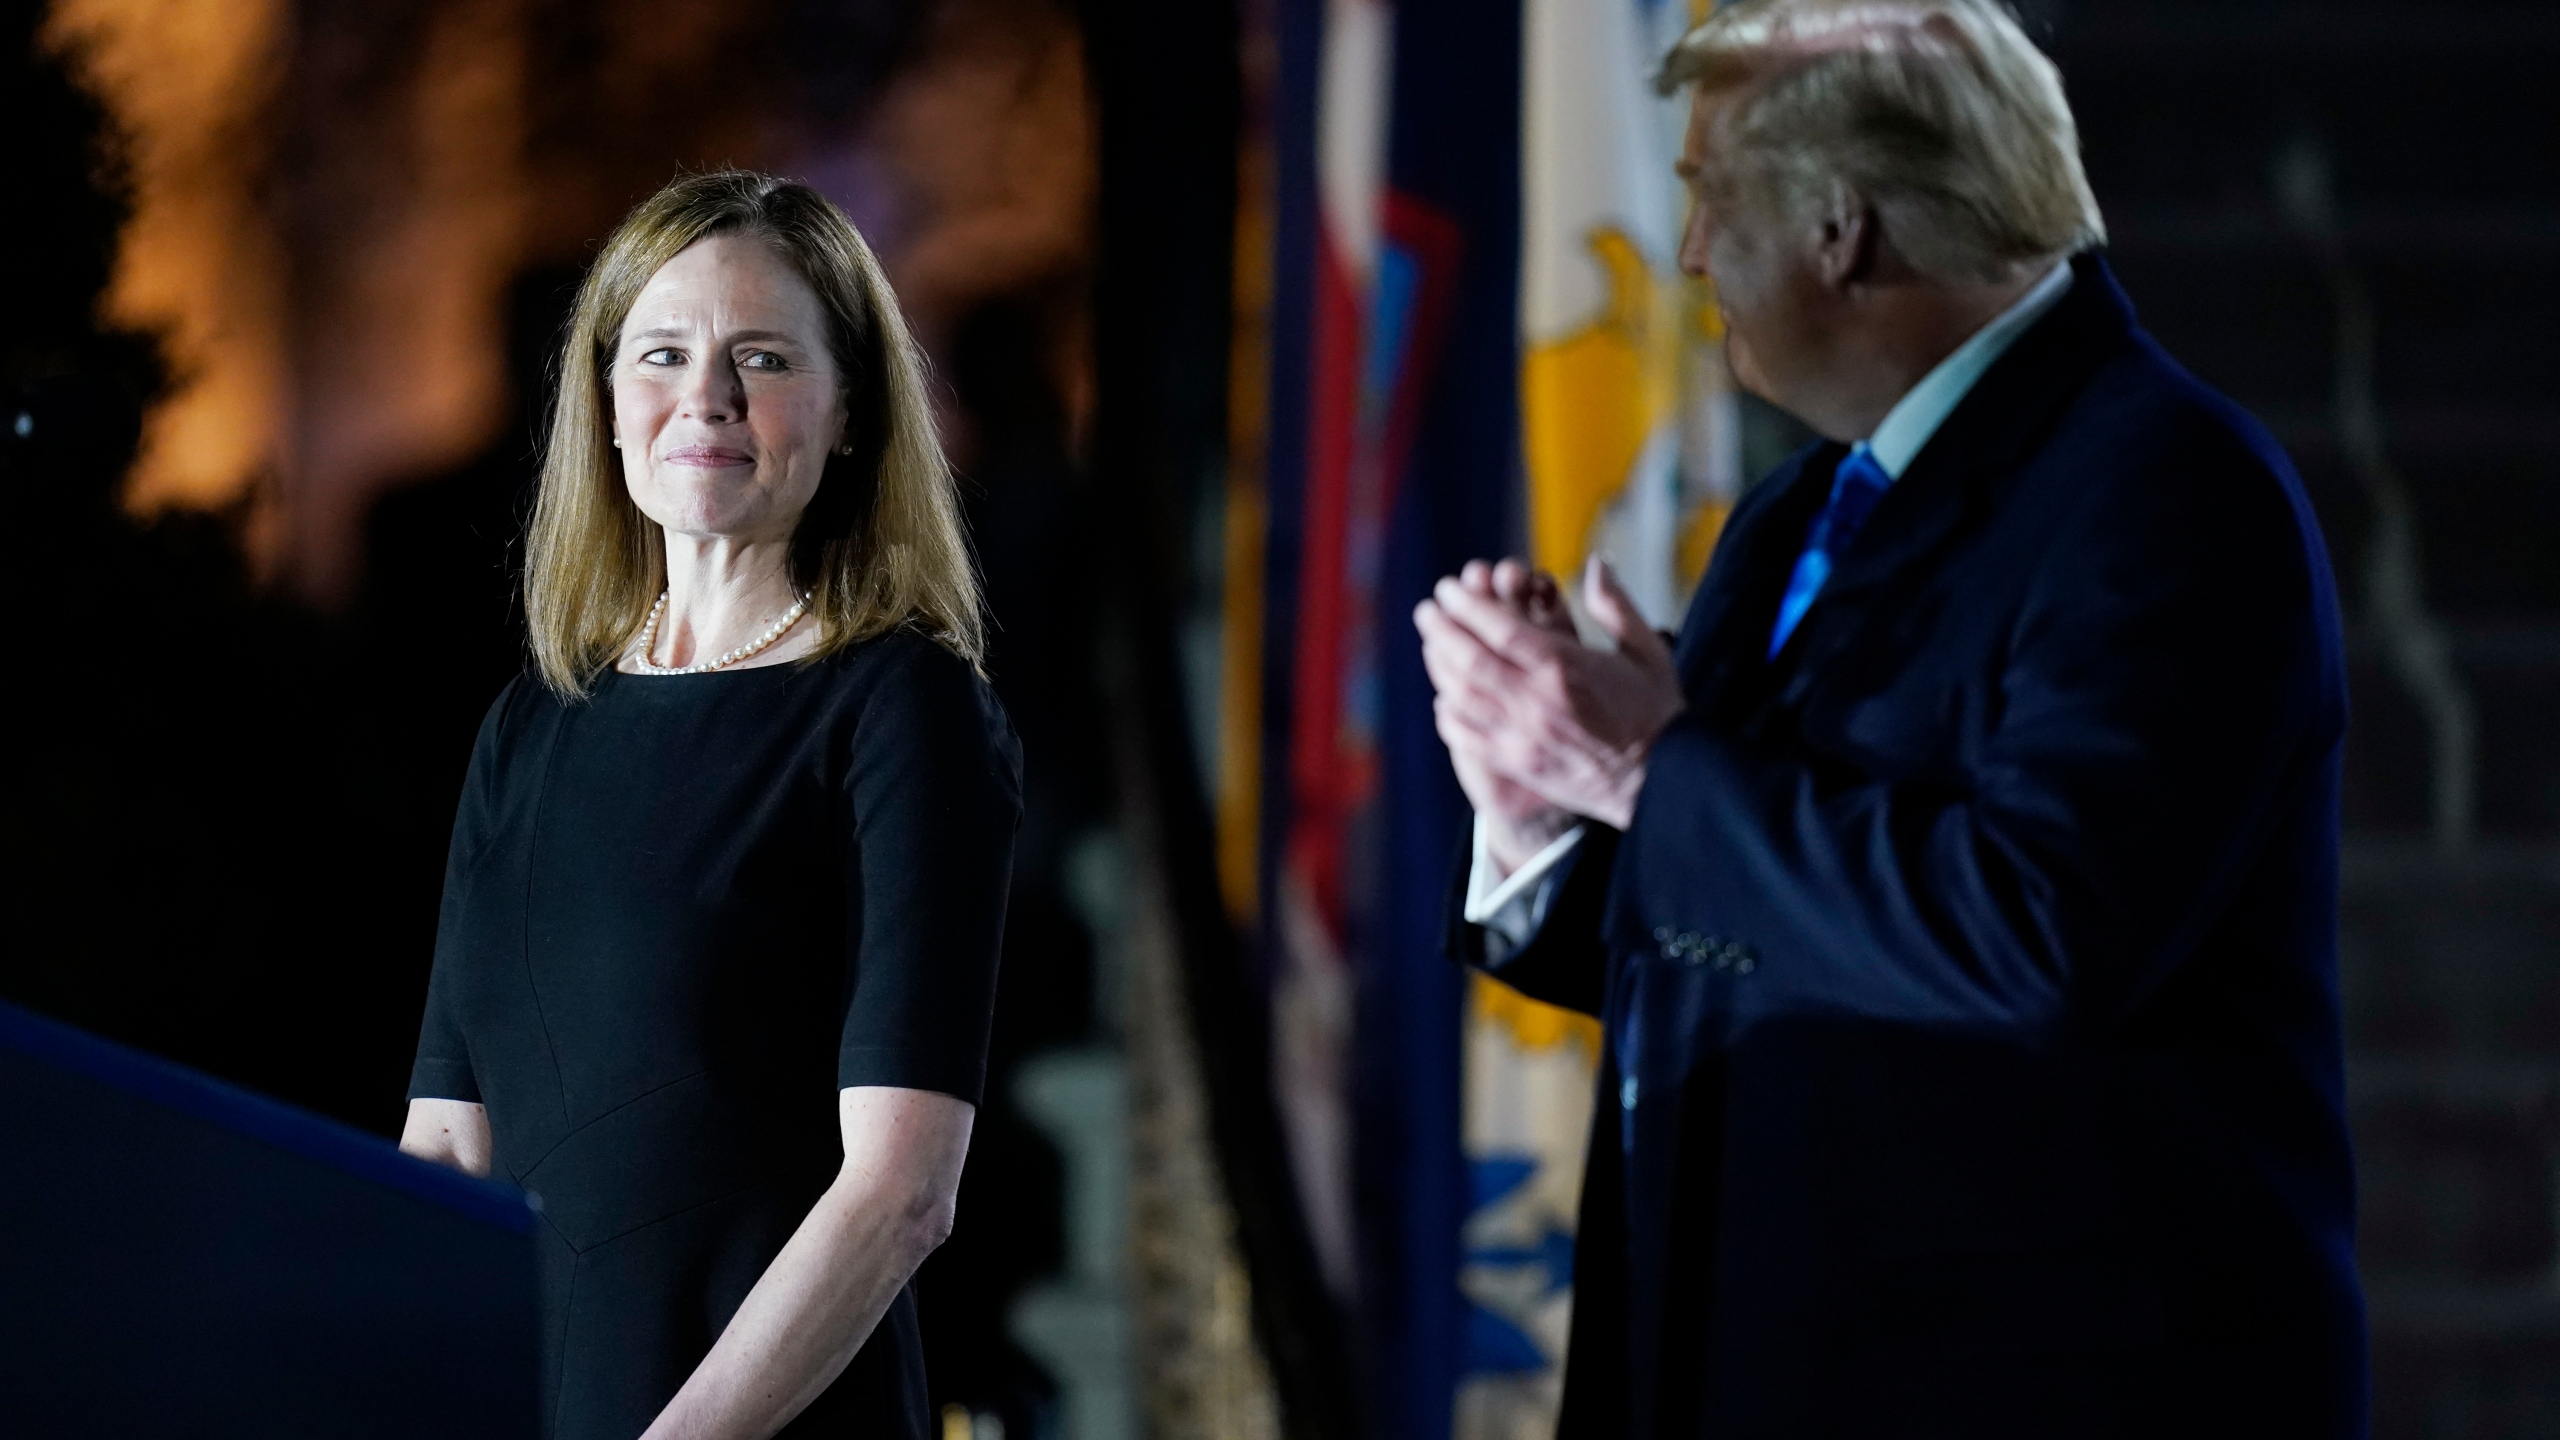 President Donald Trump looks toward Amy Coney Barrett, before Supreme Court Justice Clarence Thomas administers the Constitutional Oath to her on the South Lawn of the White House on Oct. 26, 2020, after Barrett was confirmed by the Senate earlier in the evening. (Patrick Semansky / Associated Press)